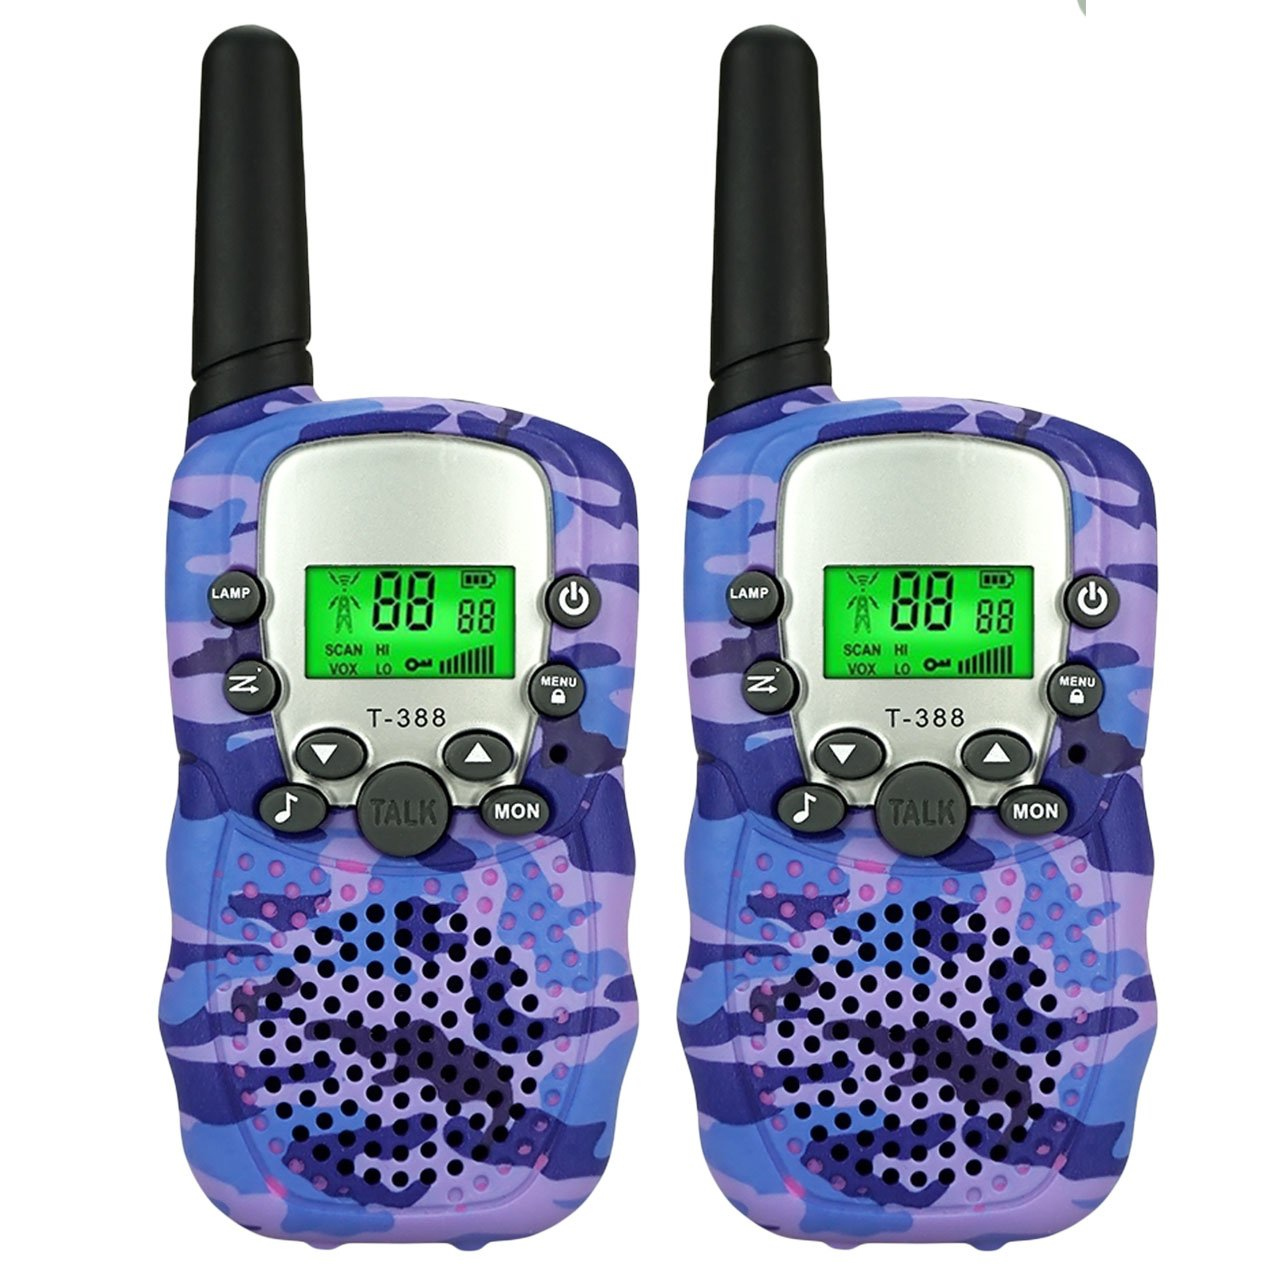 TISY Toys for 3-12 Year Old Girls, Two Way Radio Long Range for Kids Birthday Presents Gifts for 3-12 Year Old Girls Boys Purple TSUSDJ06